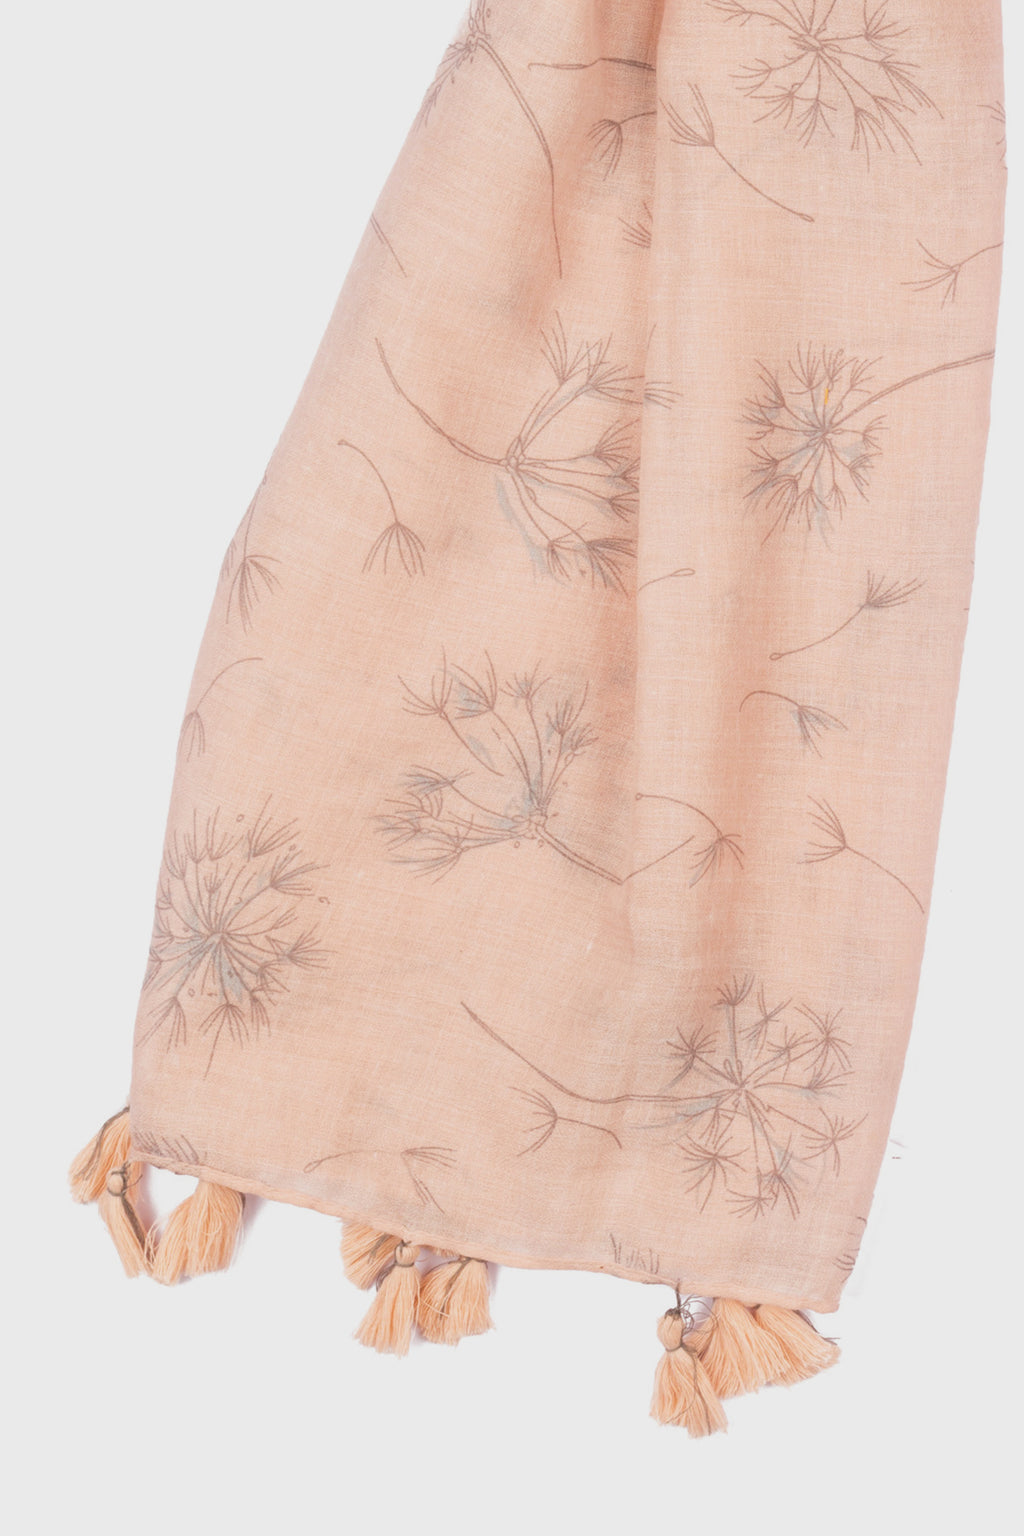 Dandelion Printed Scarf With Tassels at Each End (BSS3758)-SCARF-BaySky